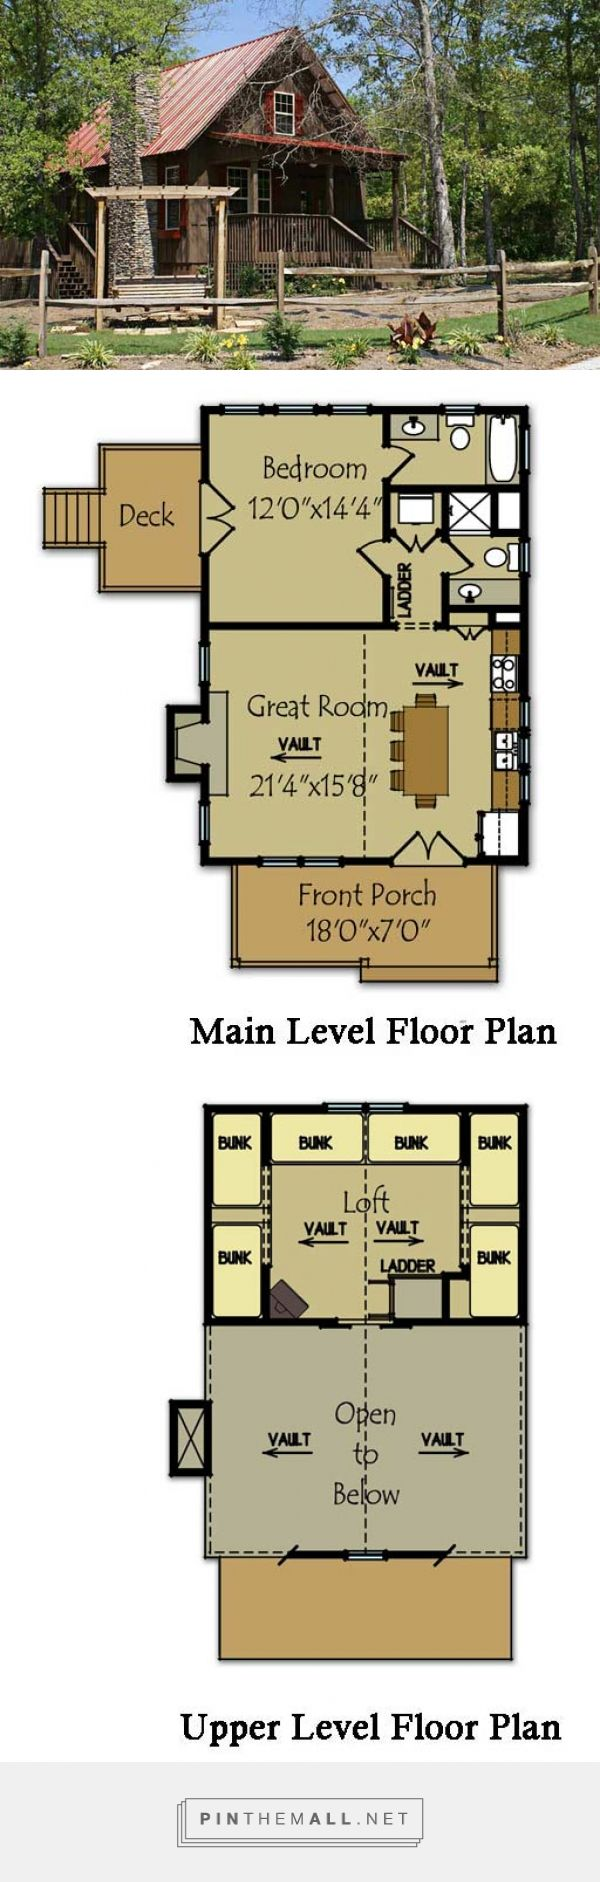 Small Cabin Plan With Loft Small Cabin House Plans Small Cabin Plans Cabin Plans With Loft House Plan With Loft